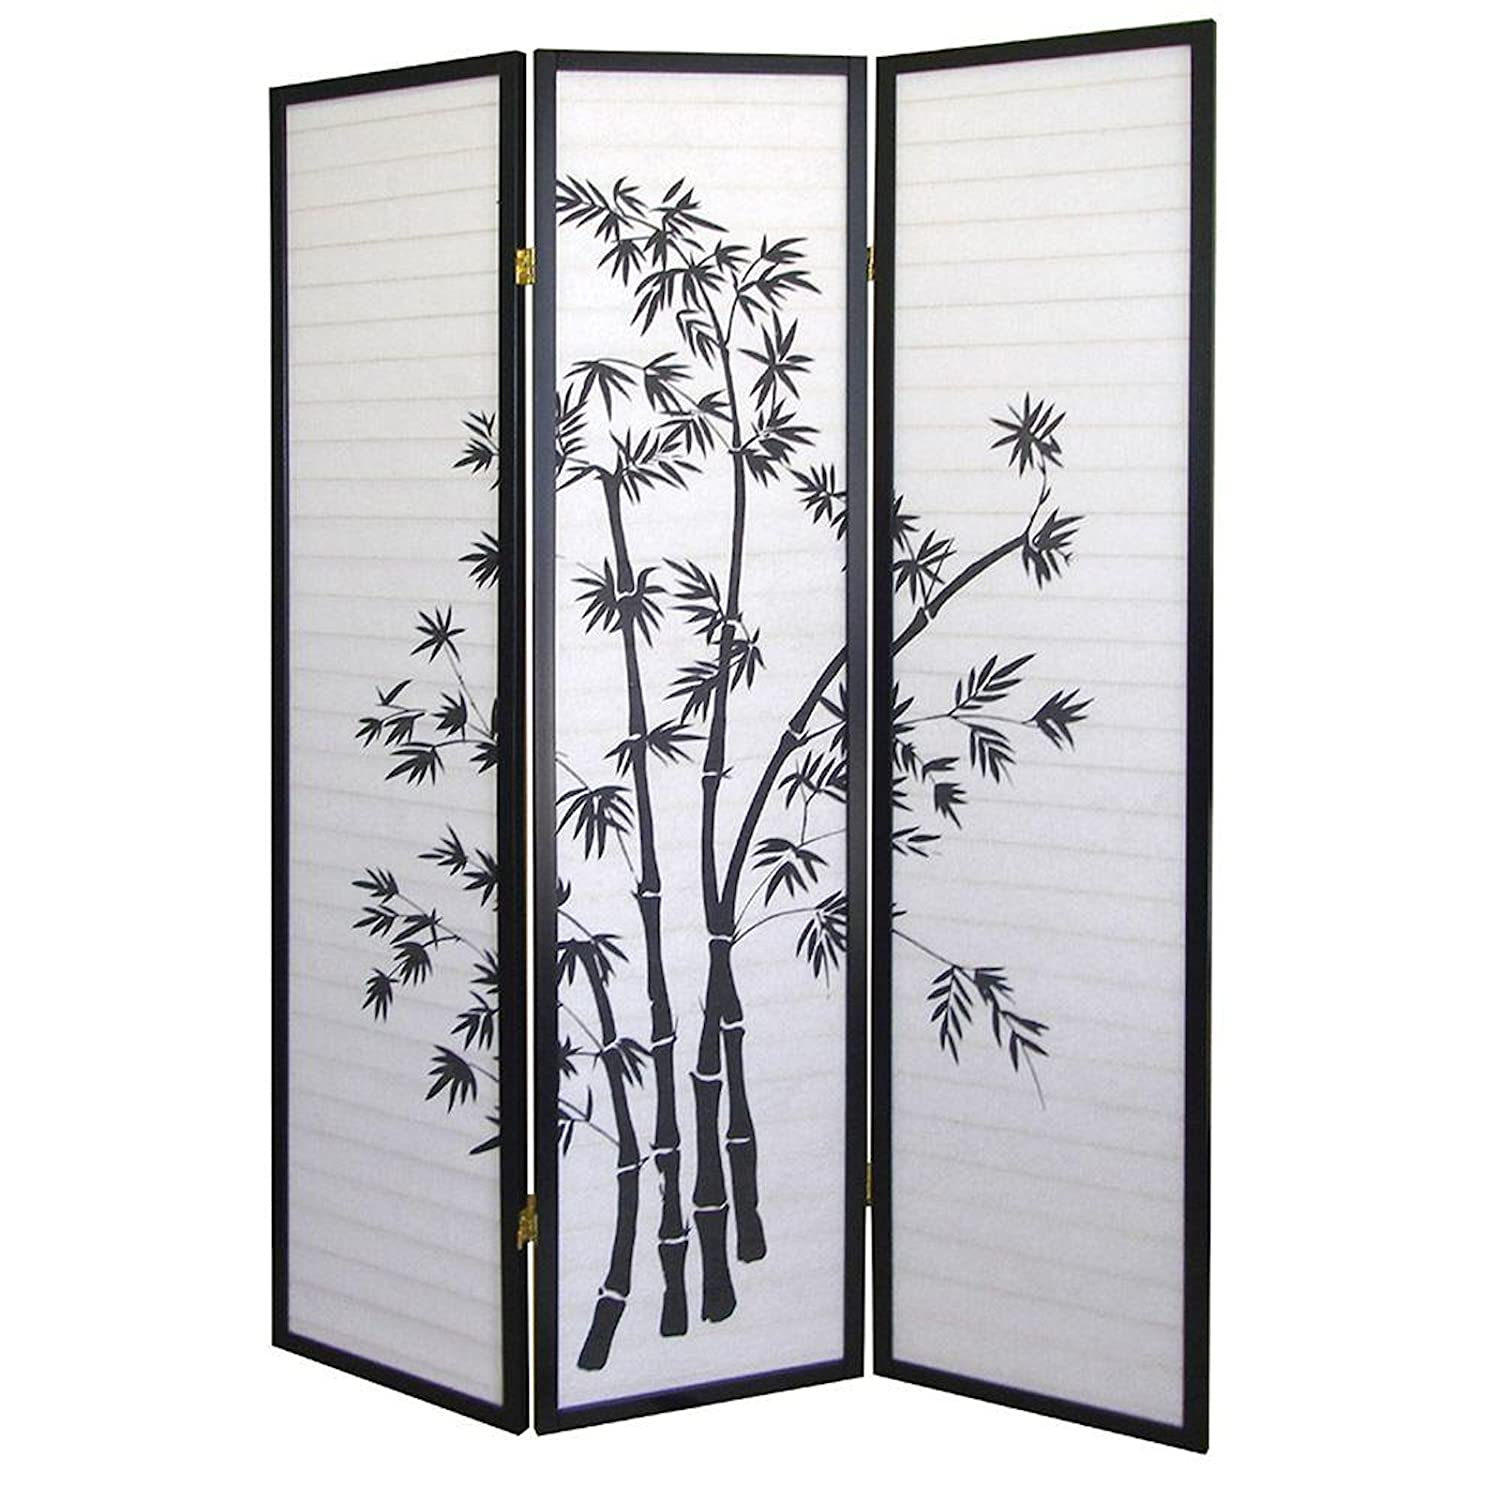 amazoncom new panel room divider bamboo shoji screen kitchen  - amazoncom new panel room divider bamboo shoji screen kitchen  dining